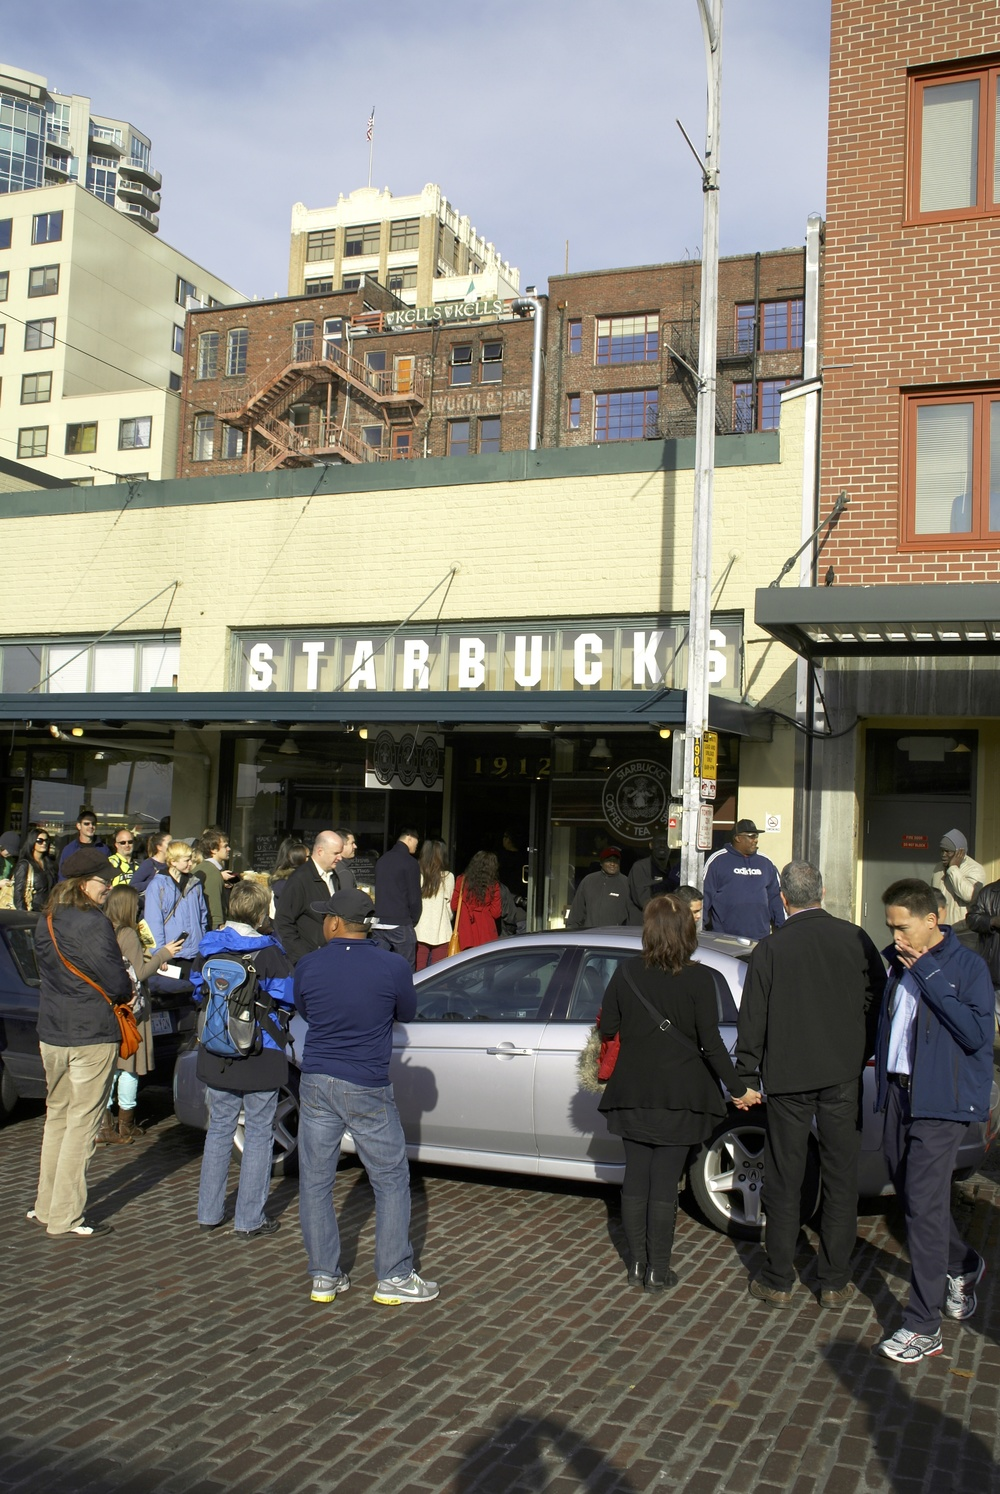 The original - and first - Starbucks shop in Seattle